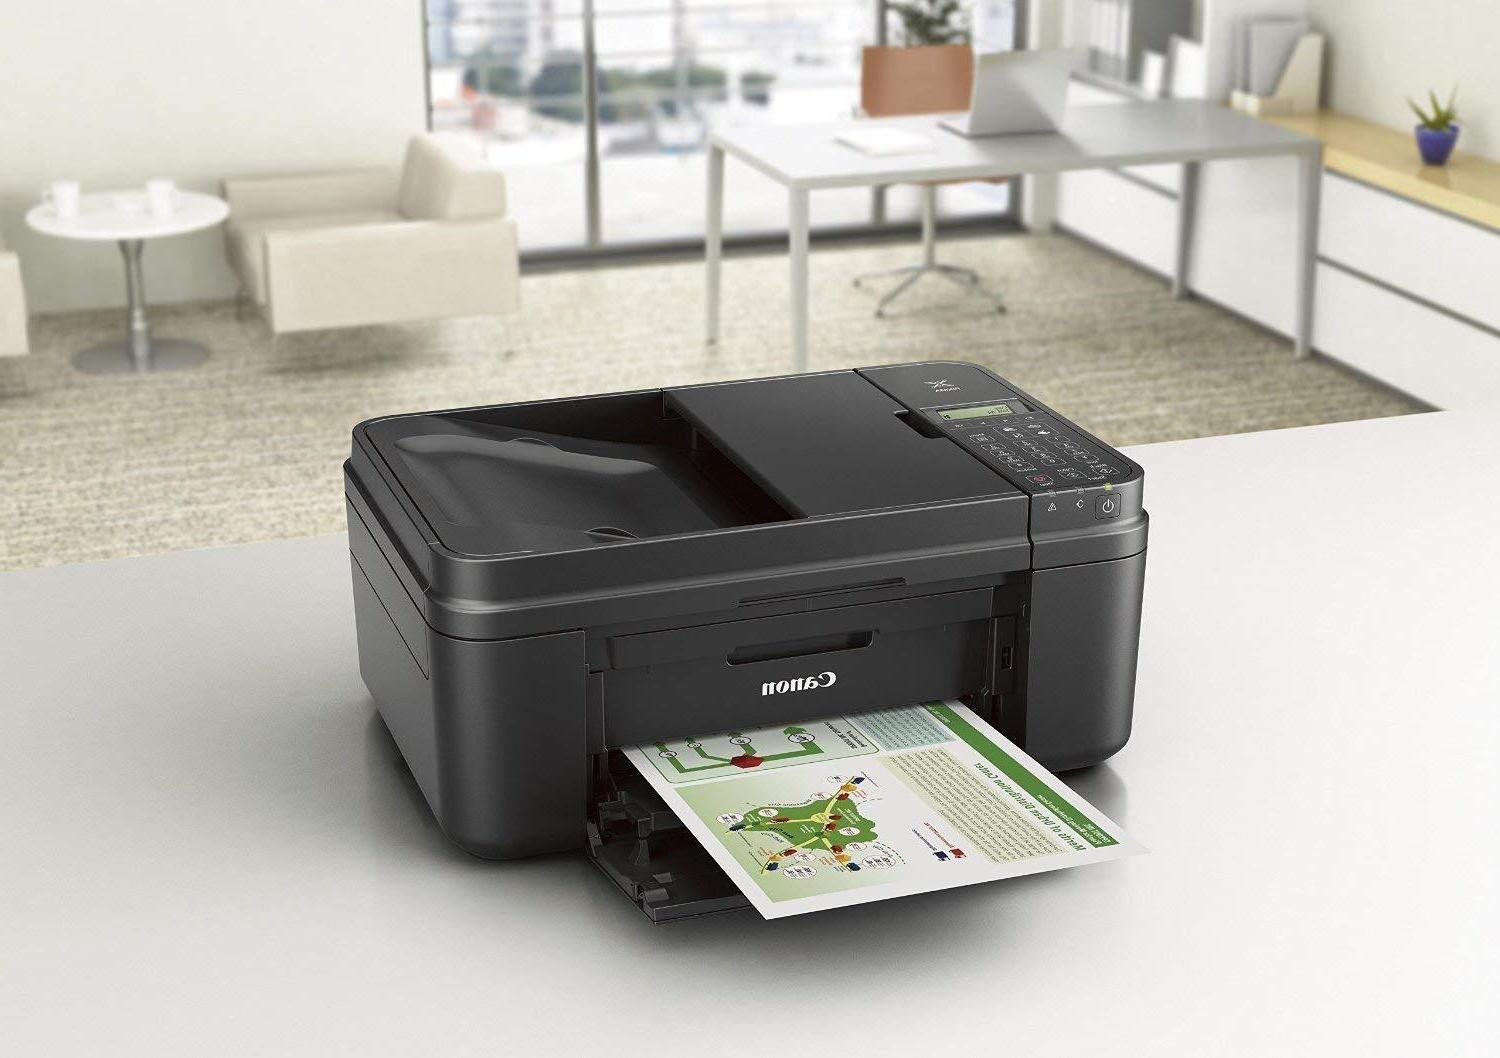 Canon All-in-One Printer Copier Scanner